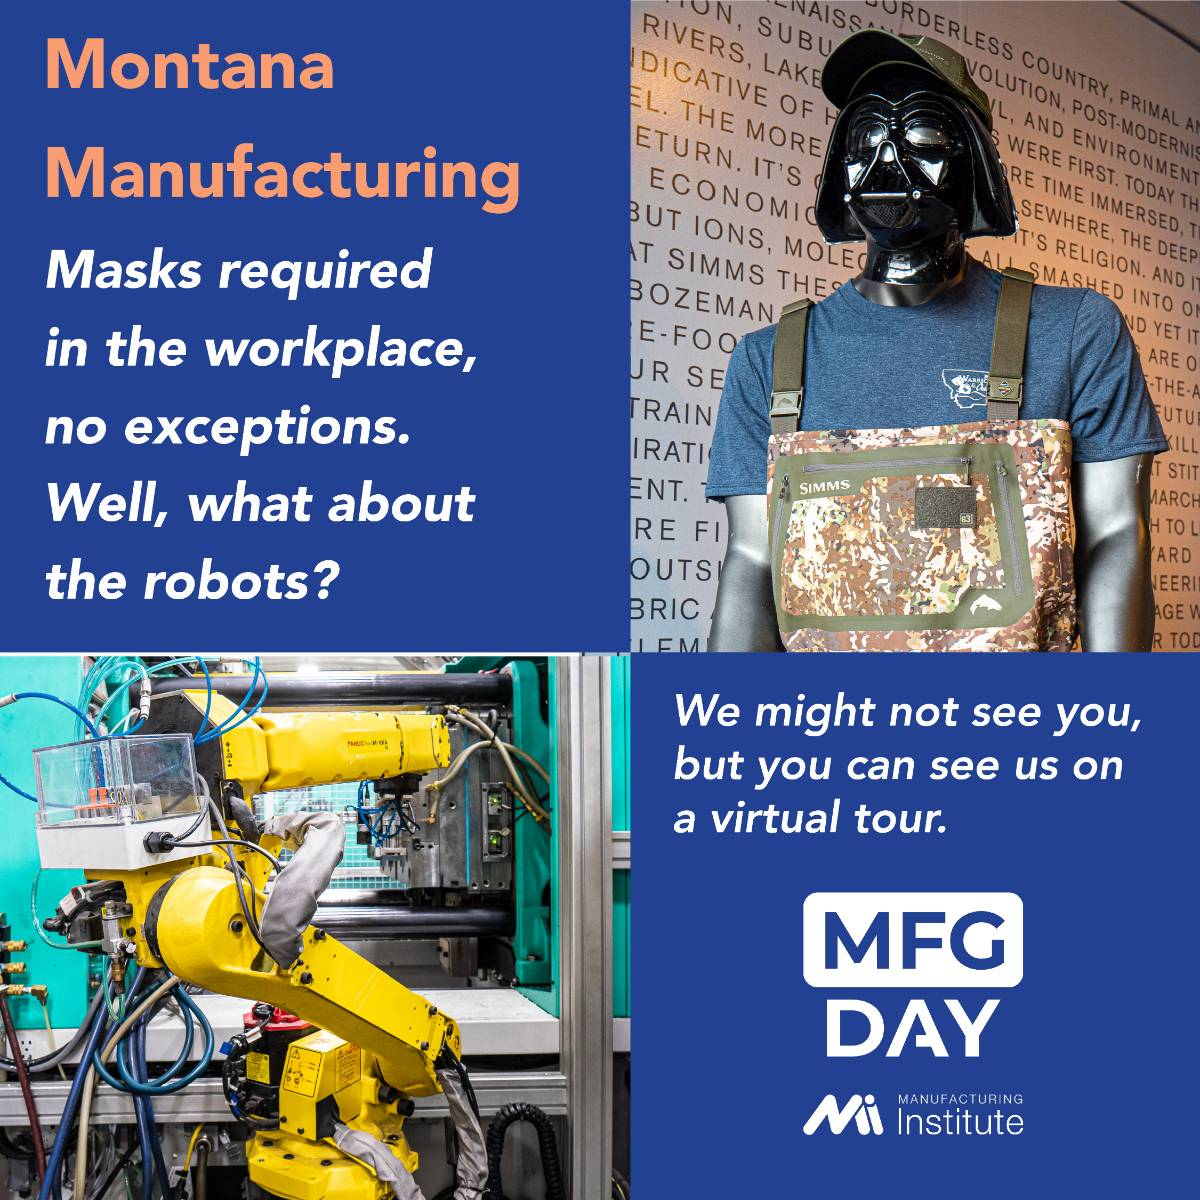 Montana Manufacturing will be open for tours Masks are required in the workplace. Well the robots get a pass :-)